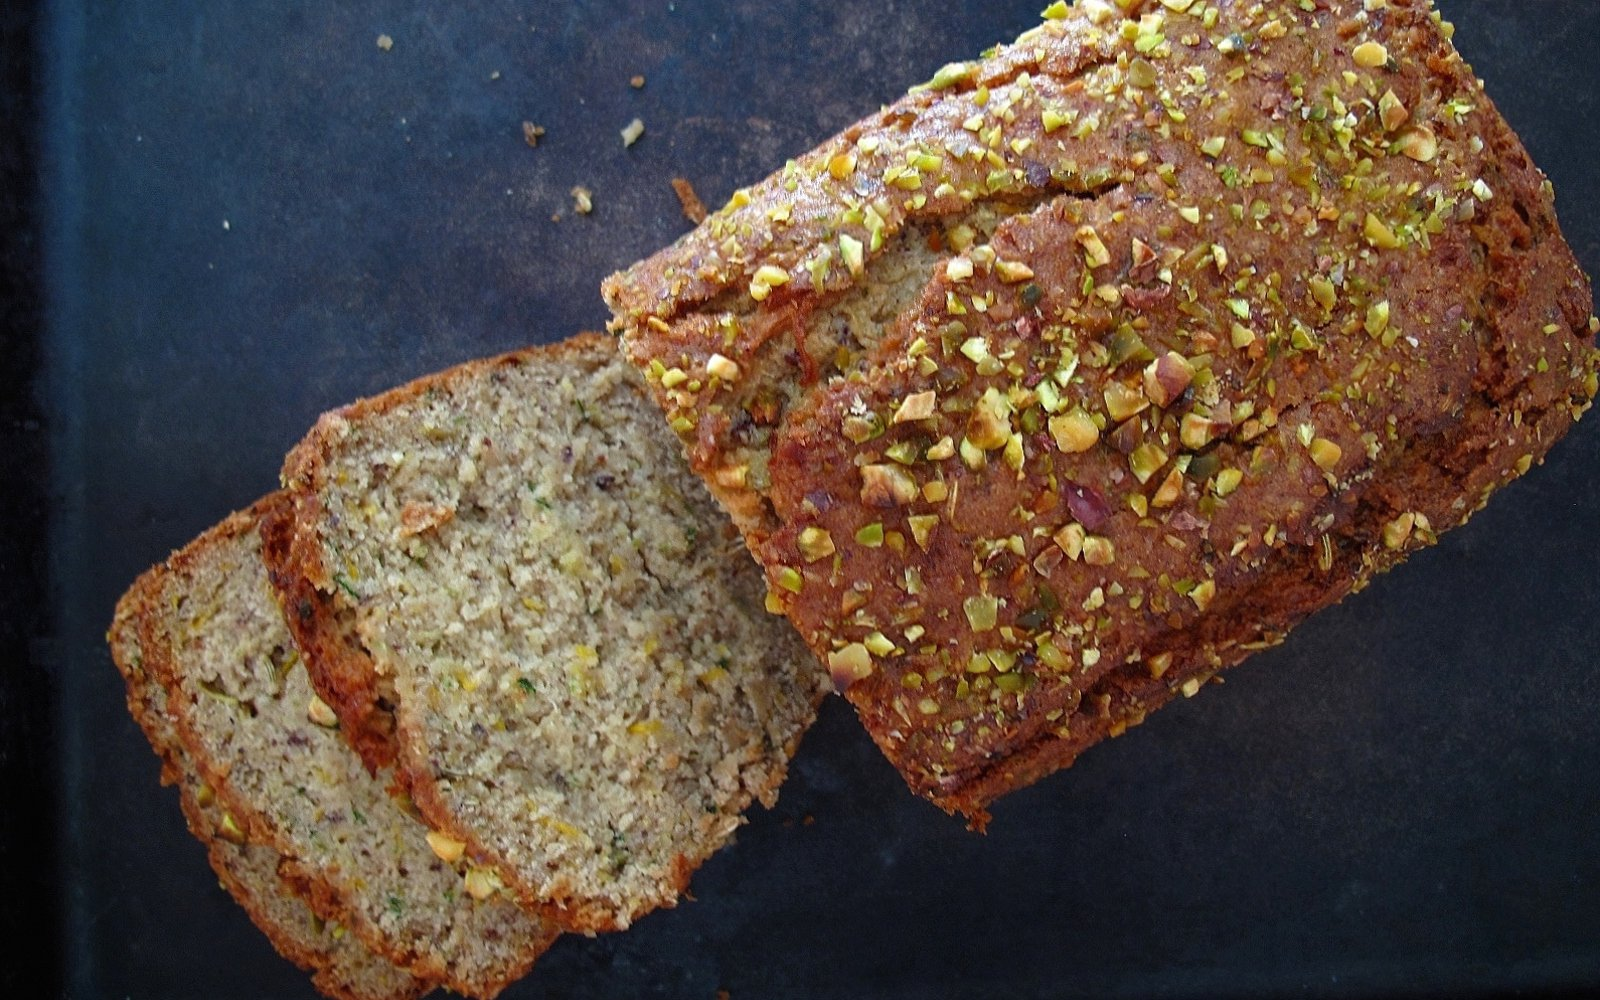 Try These 10 Recipes For Baked Goods Made Super-Moist With Zucchini